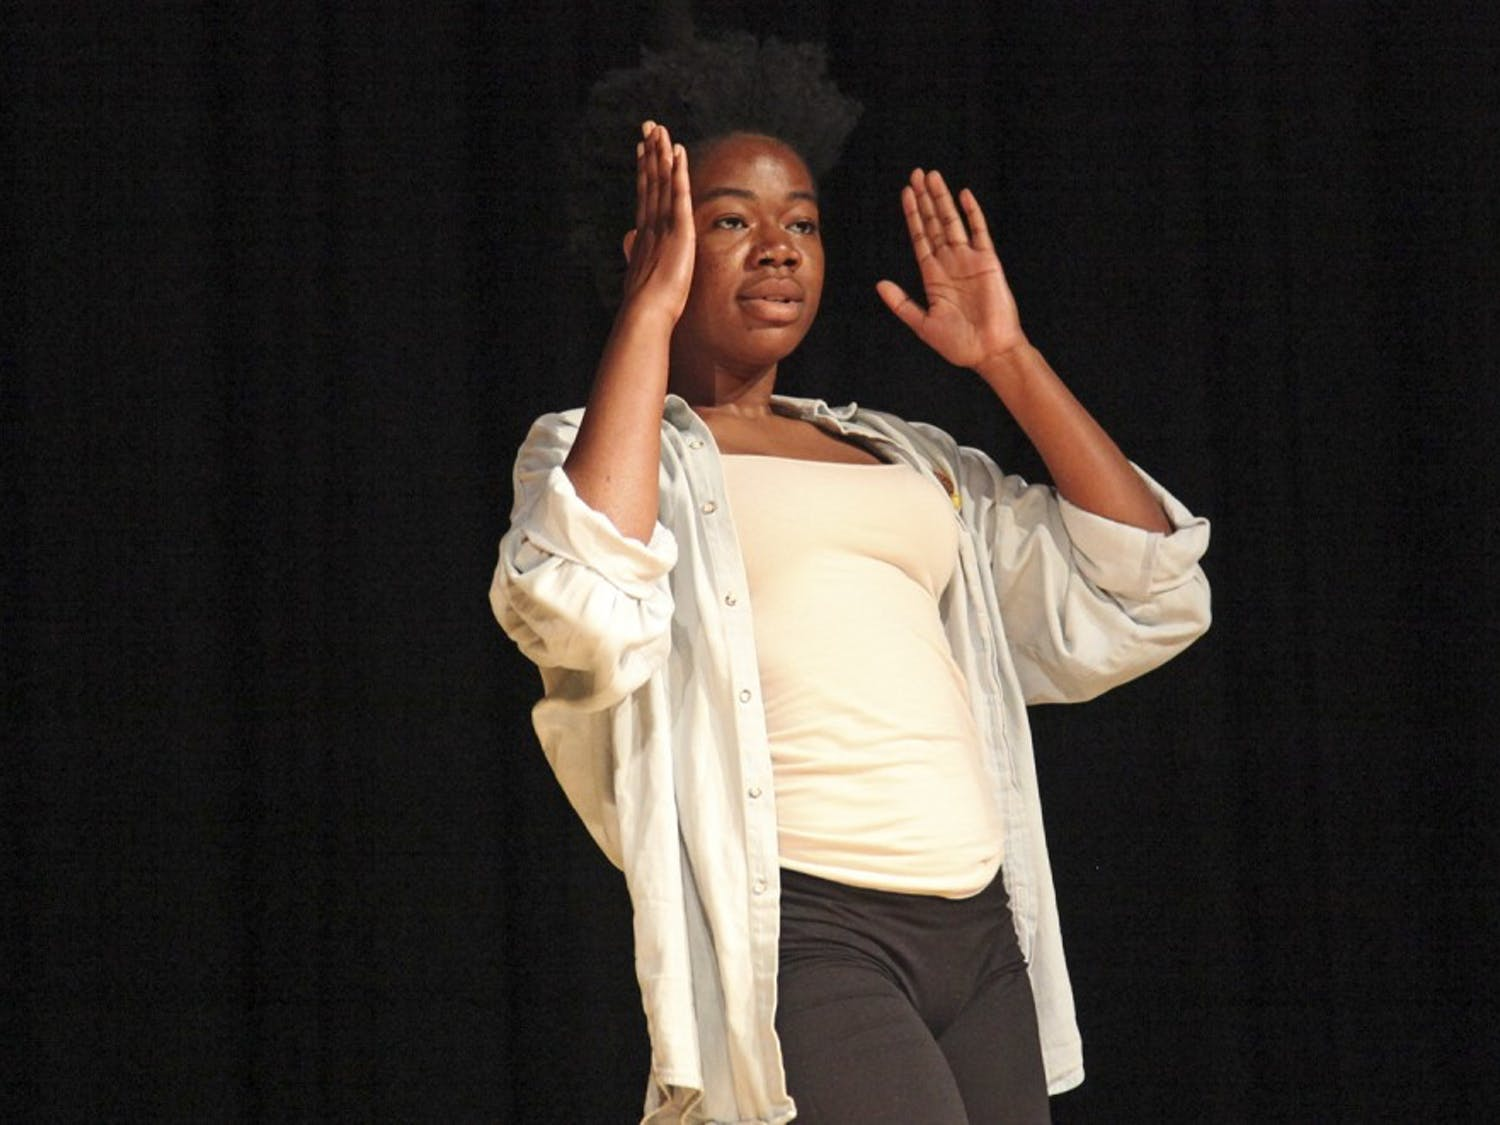 Damola Akintunde performs the opening dance during the Body Politics talk in in the Sonya B. Hayes Stone Center on Wednesday night.